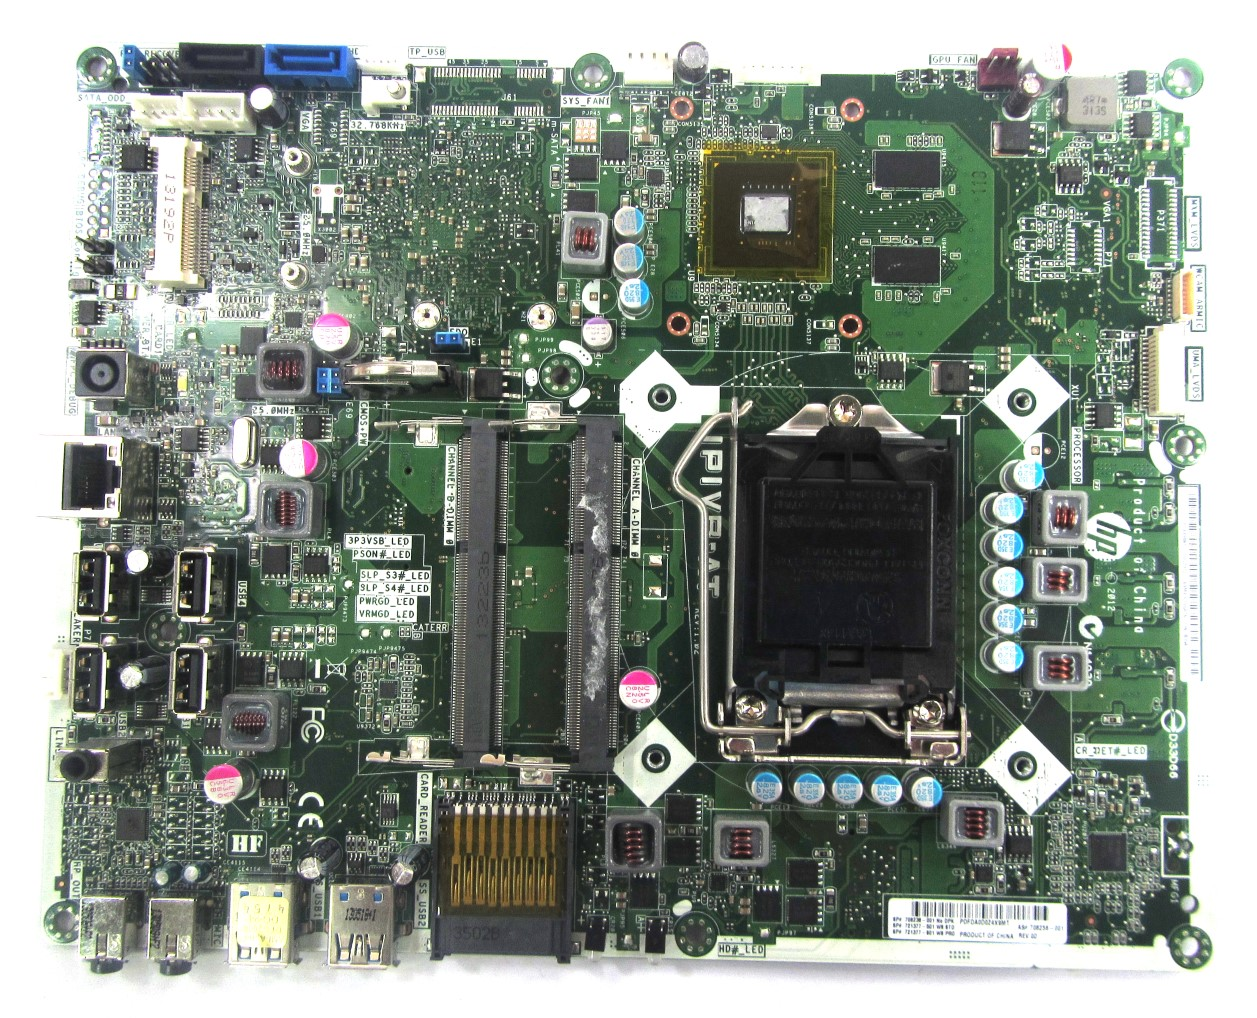 708236-001 HP Intel LGA1155 AiO Motherboard - IPIVB-AT